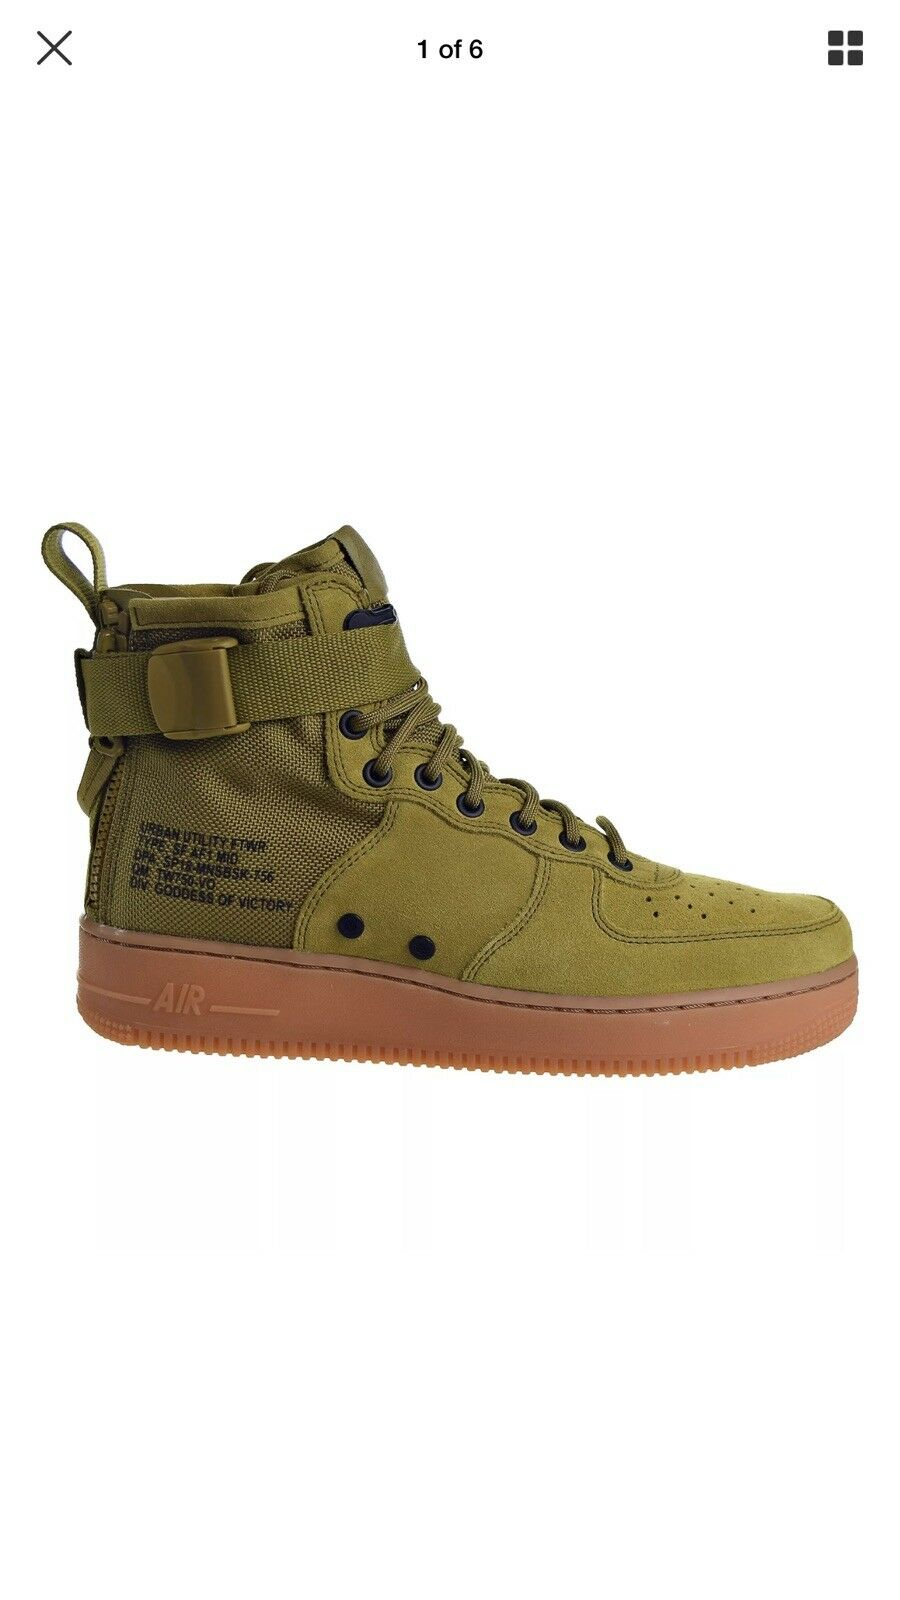 d630e660c5c Nike AIR FORCE SF1 MID SIZE 8 Retail Dead Stock- New In Box 160  nxtjxy8986-Athletic Shoes